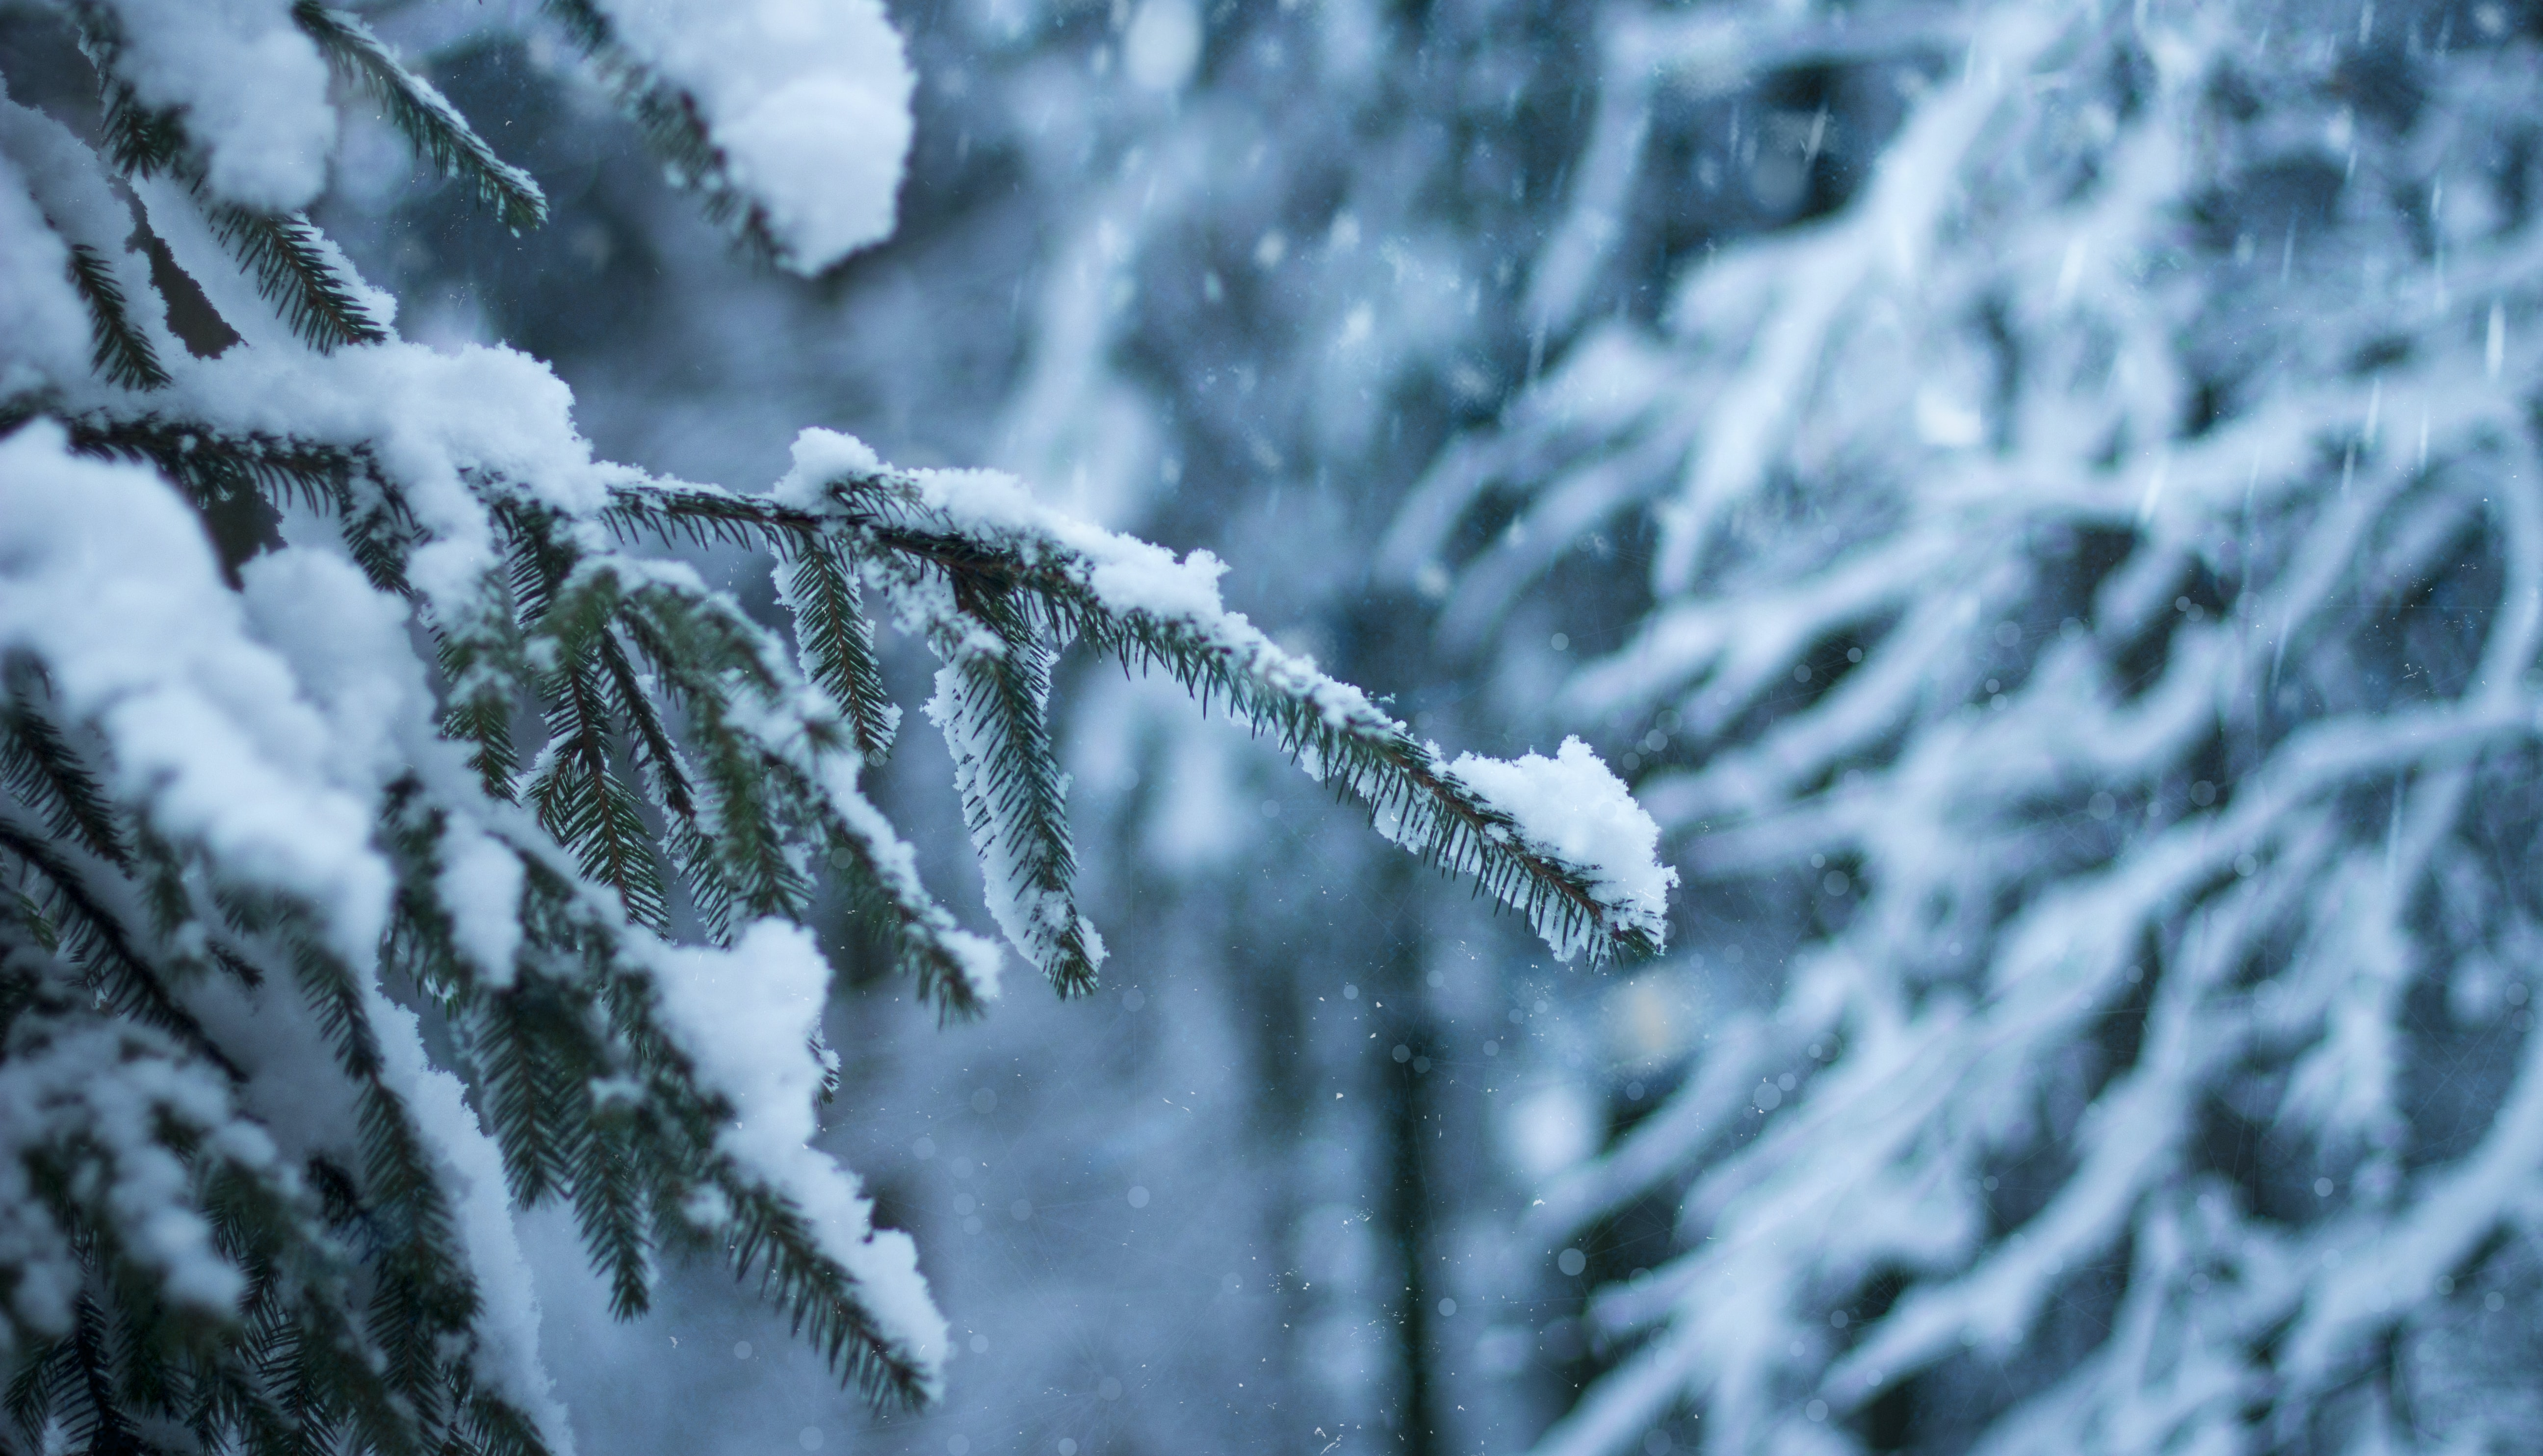 snow covered pine tree in selective focus photographyt